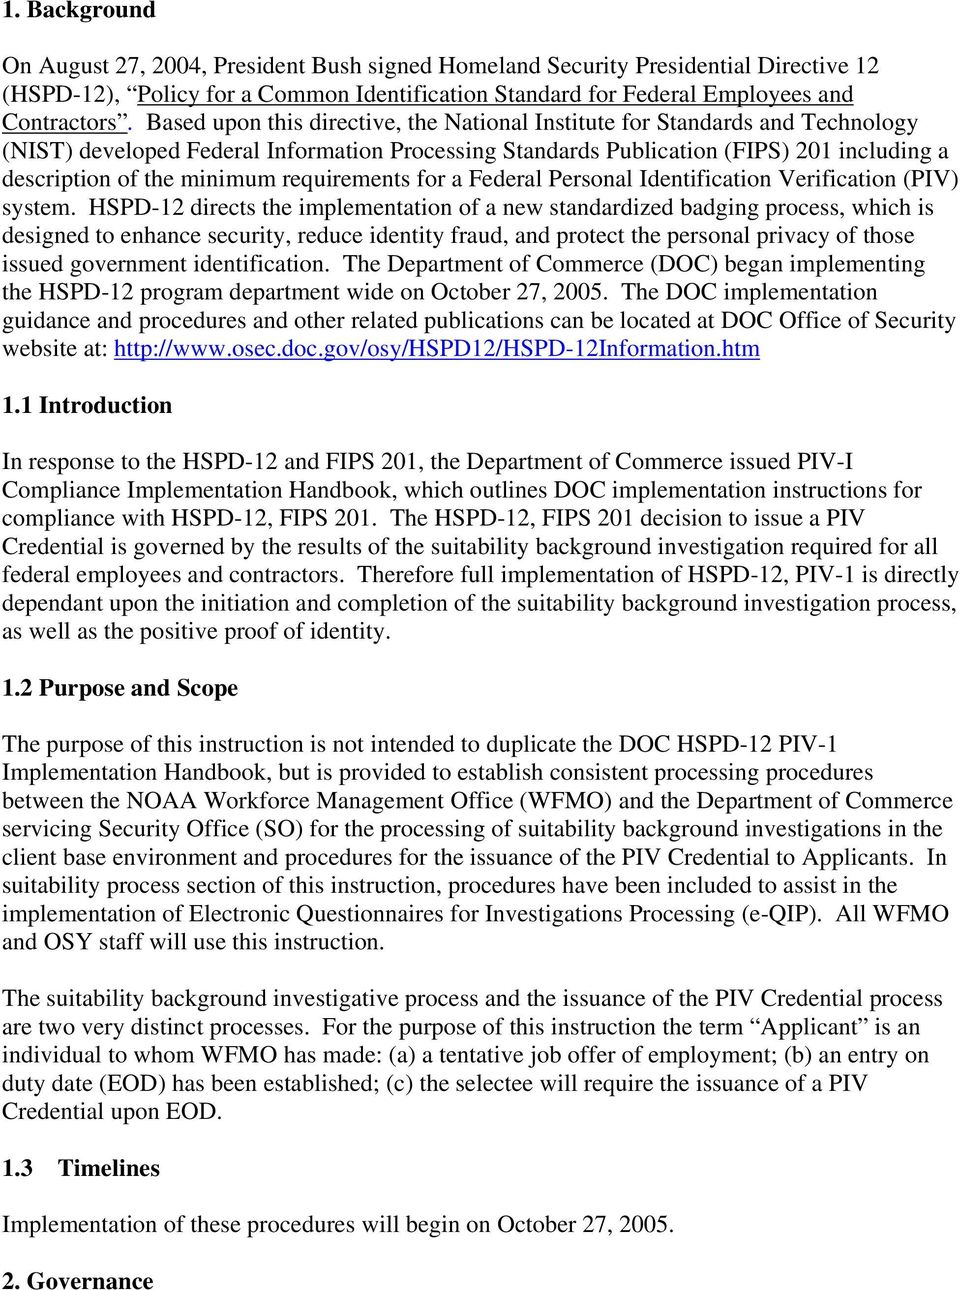 requirements for a Federal Personal Identification Verification (PIV) system.